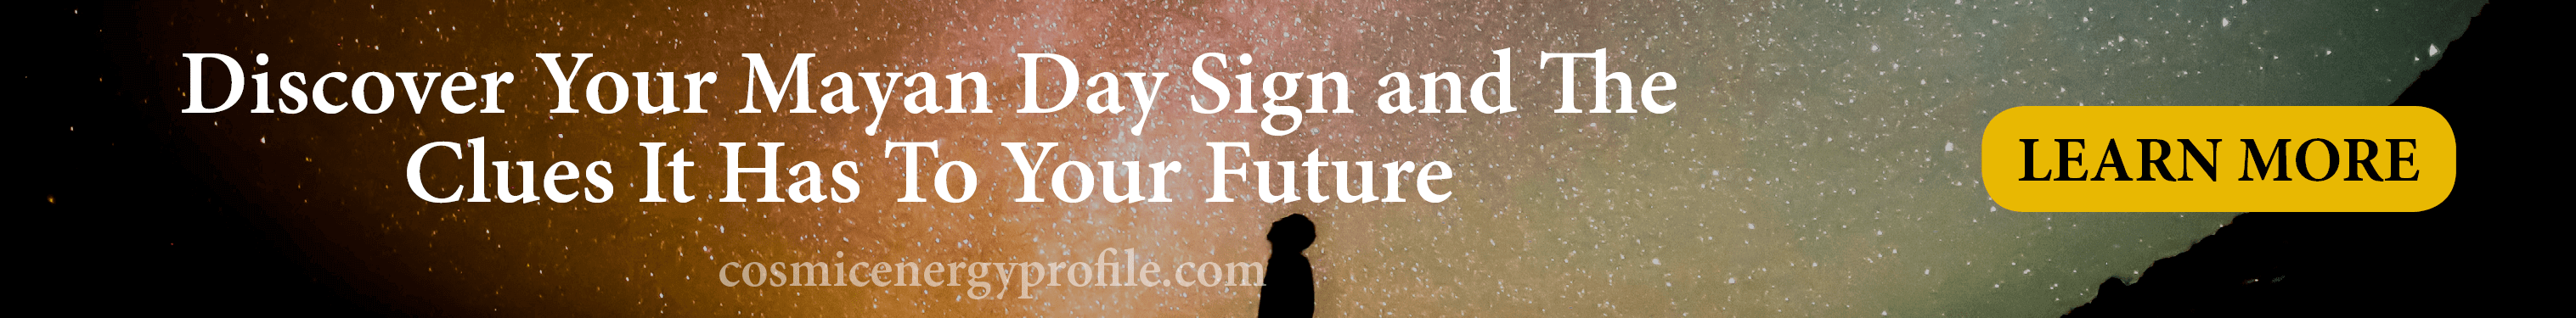 Discover Your Mayan Day Sign and The Clues it Has to Your Future